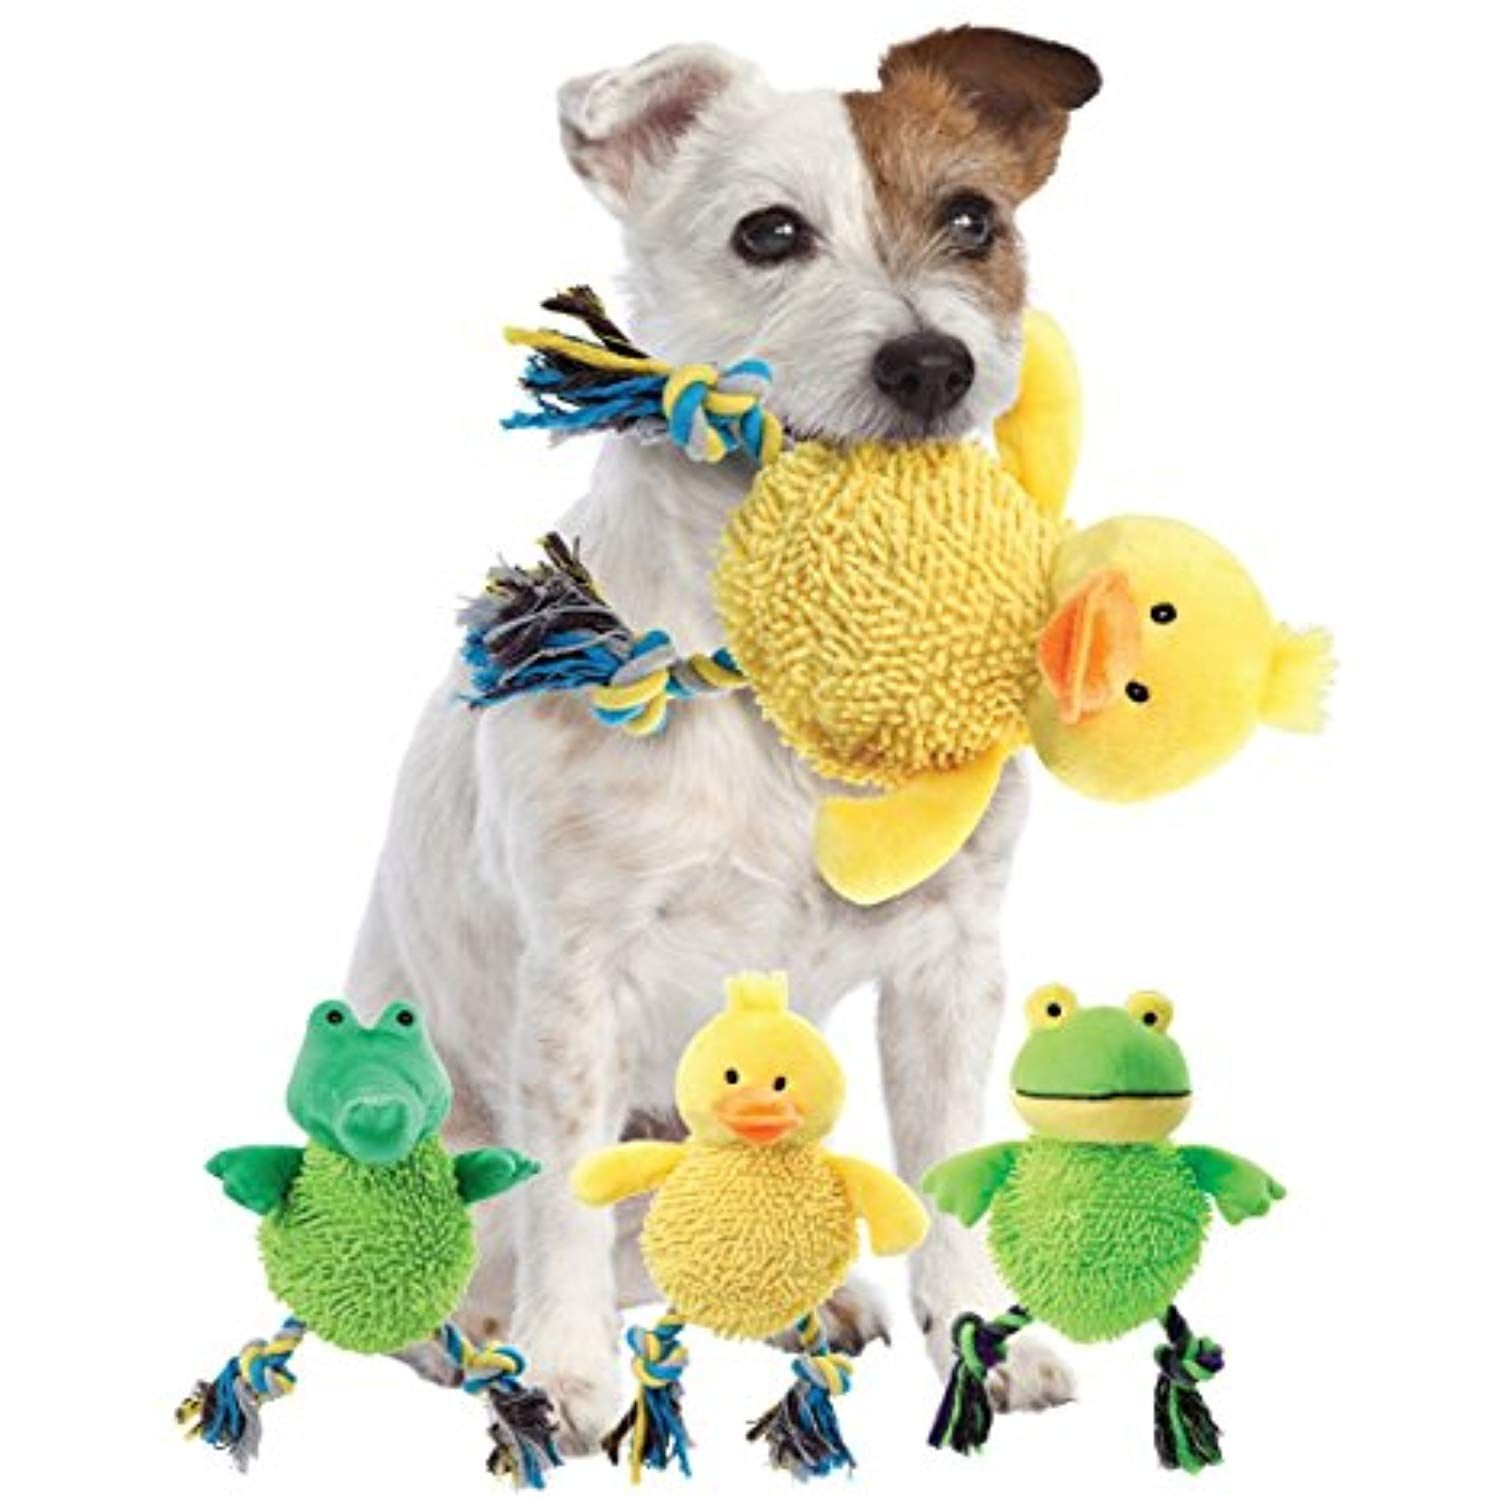 Etna Products Tt Laughing Dog Toy Makes A Fun Chuckling Sound When